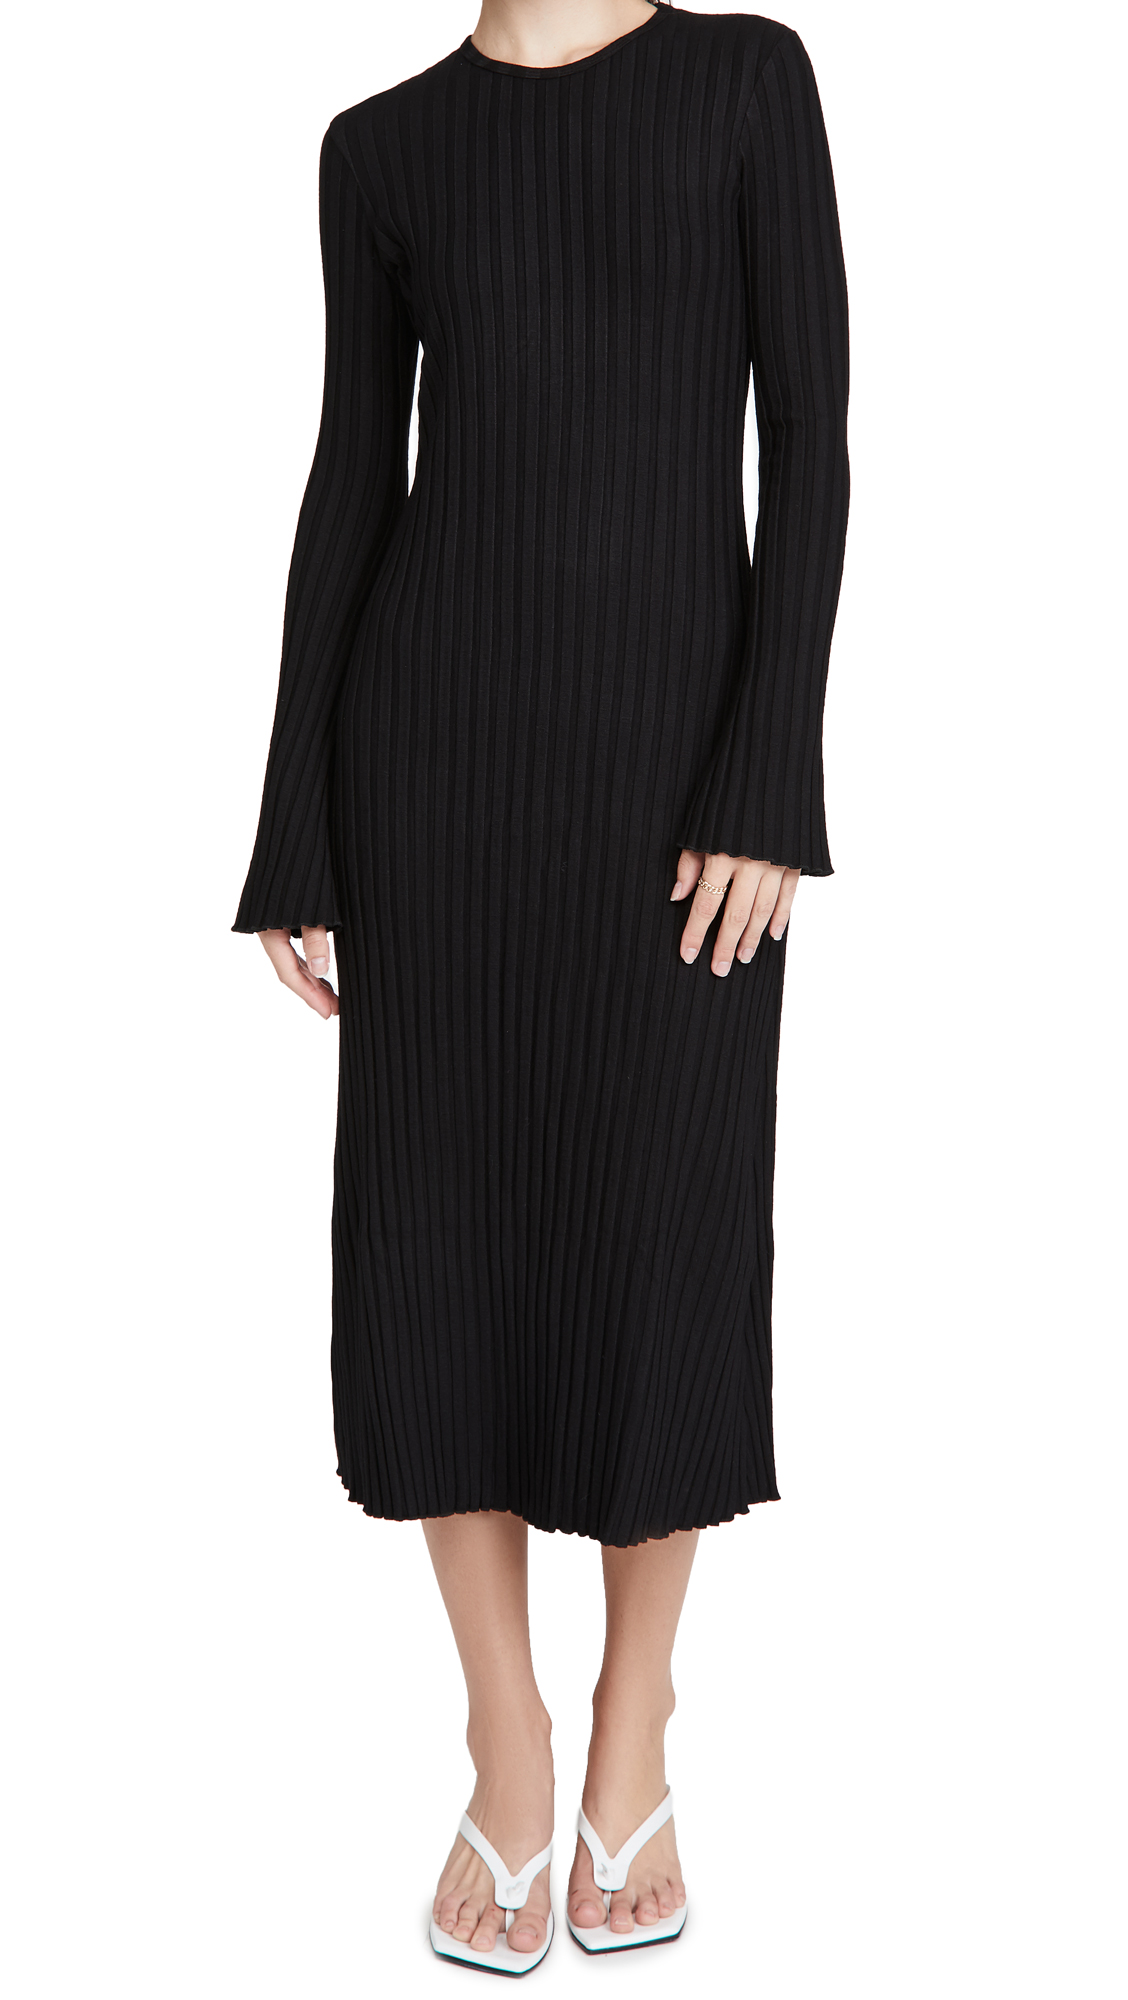 Simon Miller Wells Long Sleeve Dress